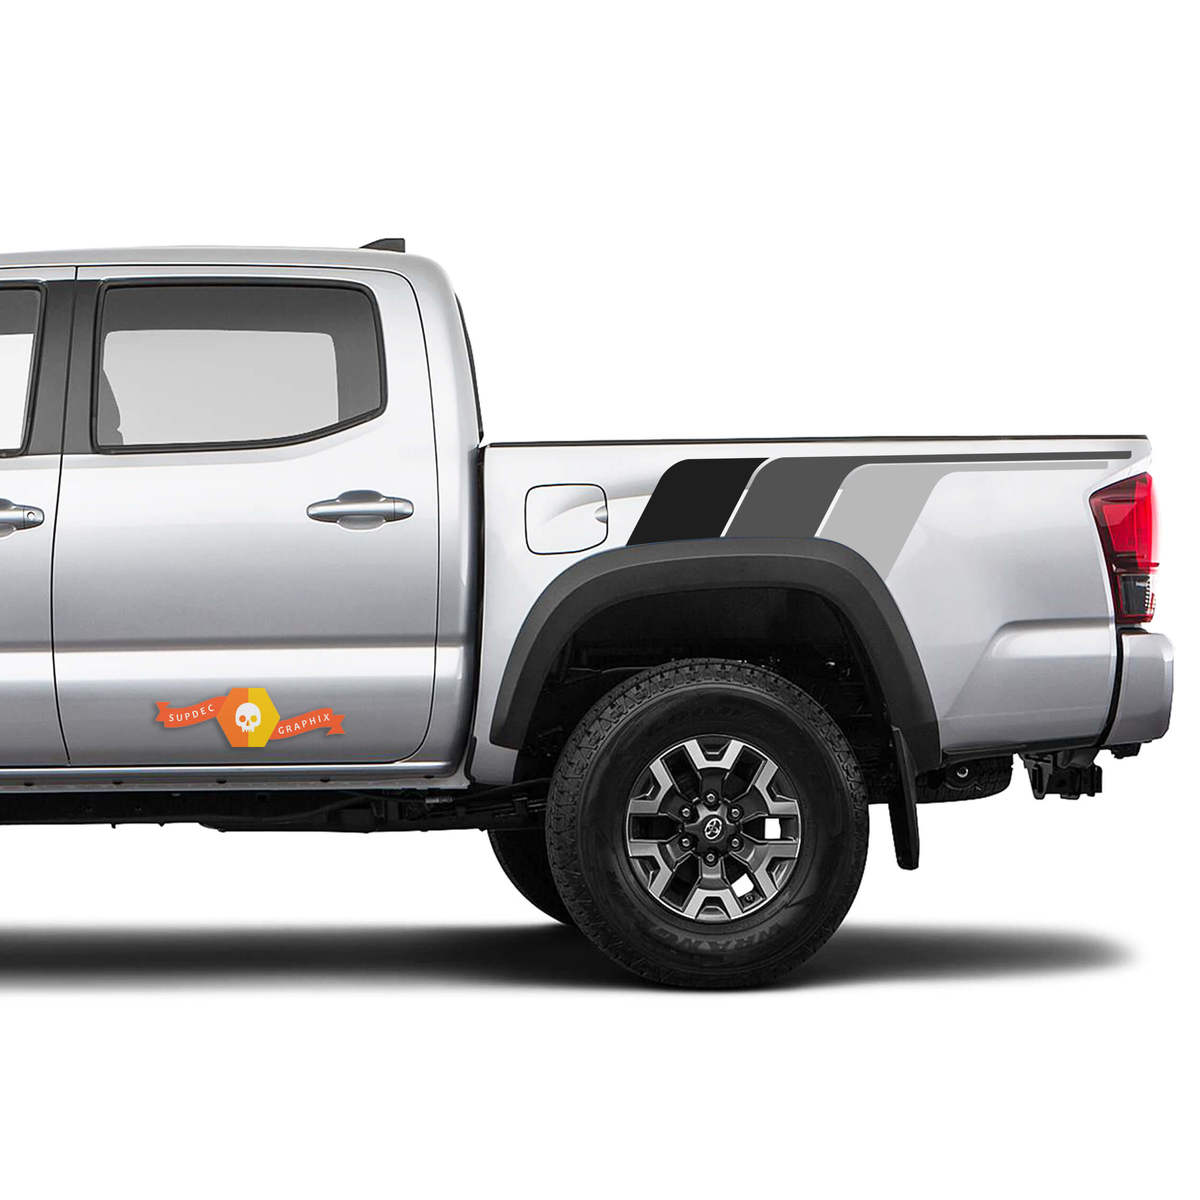 2 Toyota Tacoma TRD Back To The Future monochrome retro vintage stripe kit for rear Sport 4x4 Off Road PRO decal